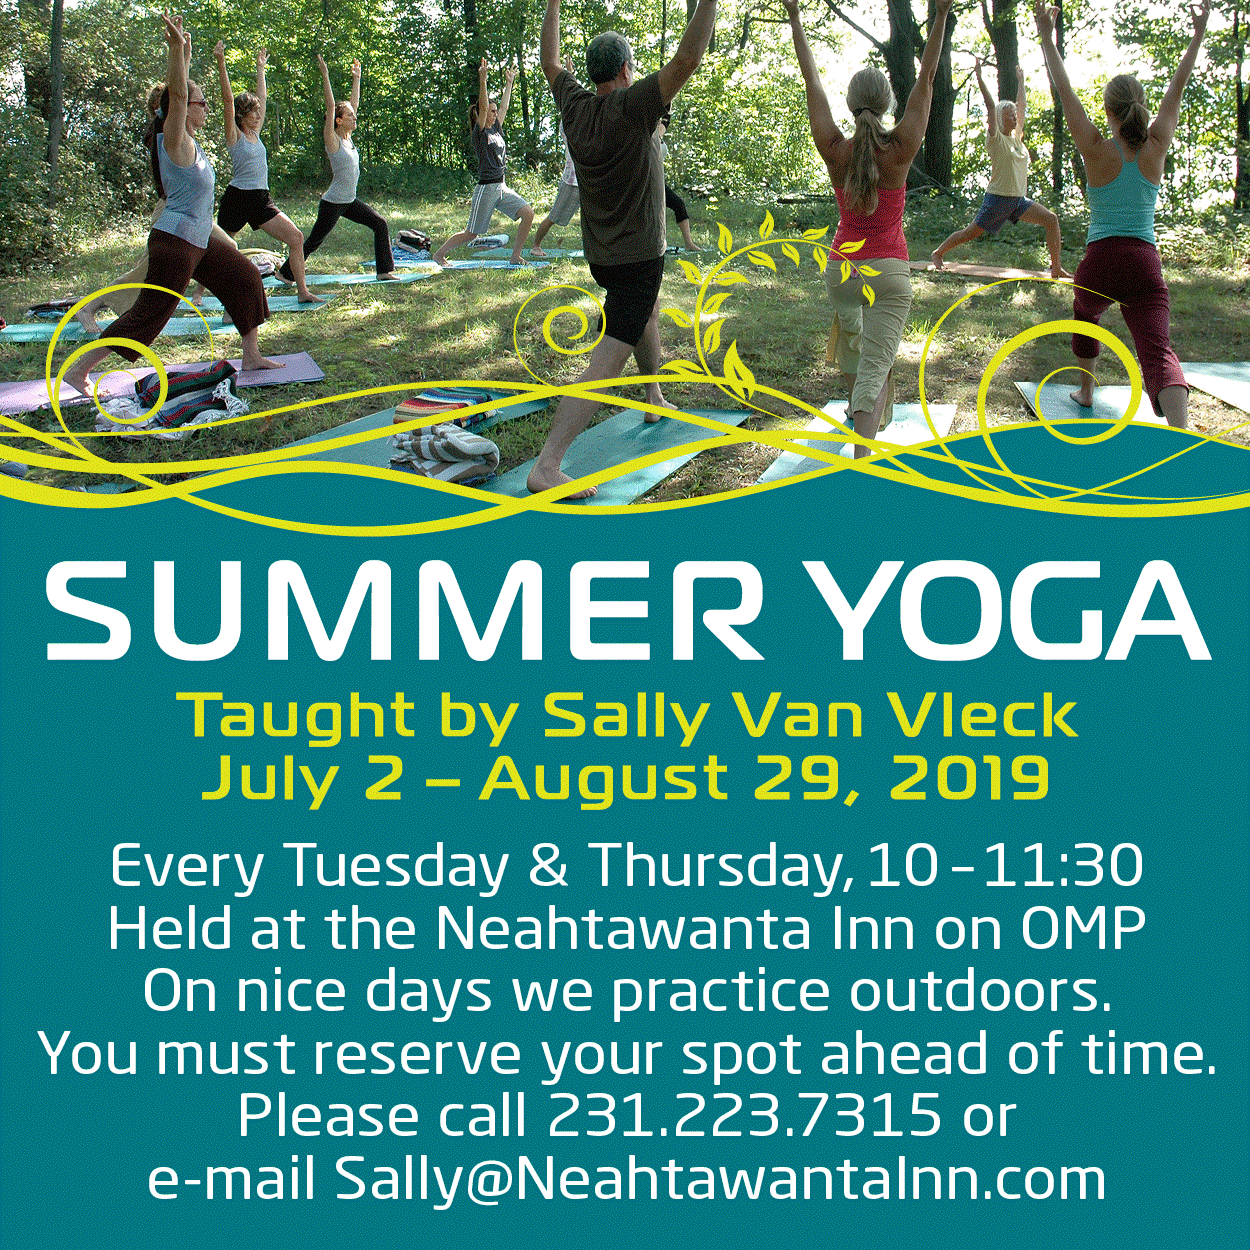 Summer Yoga at Neahtawanta Inn